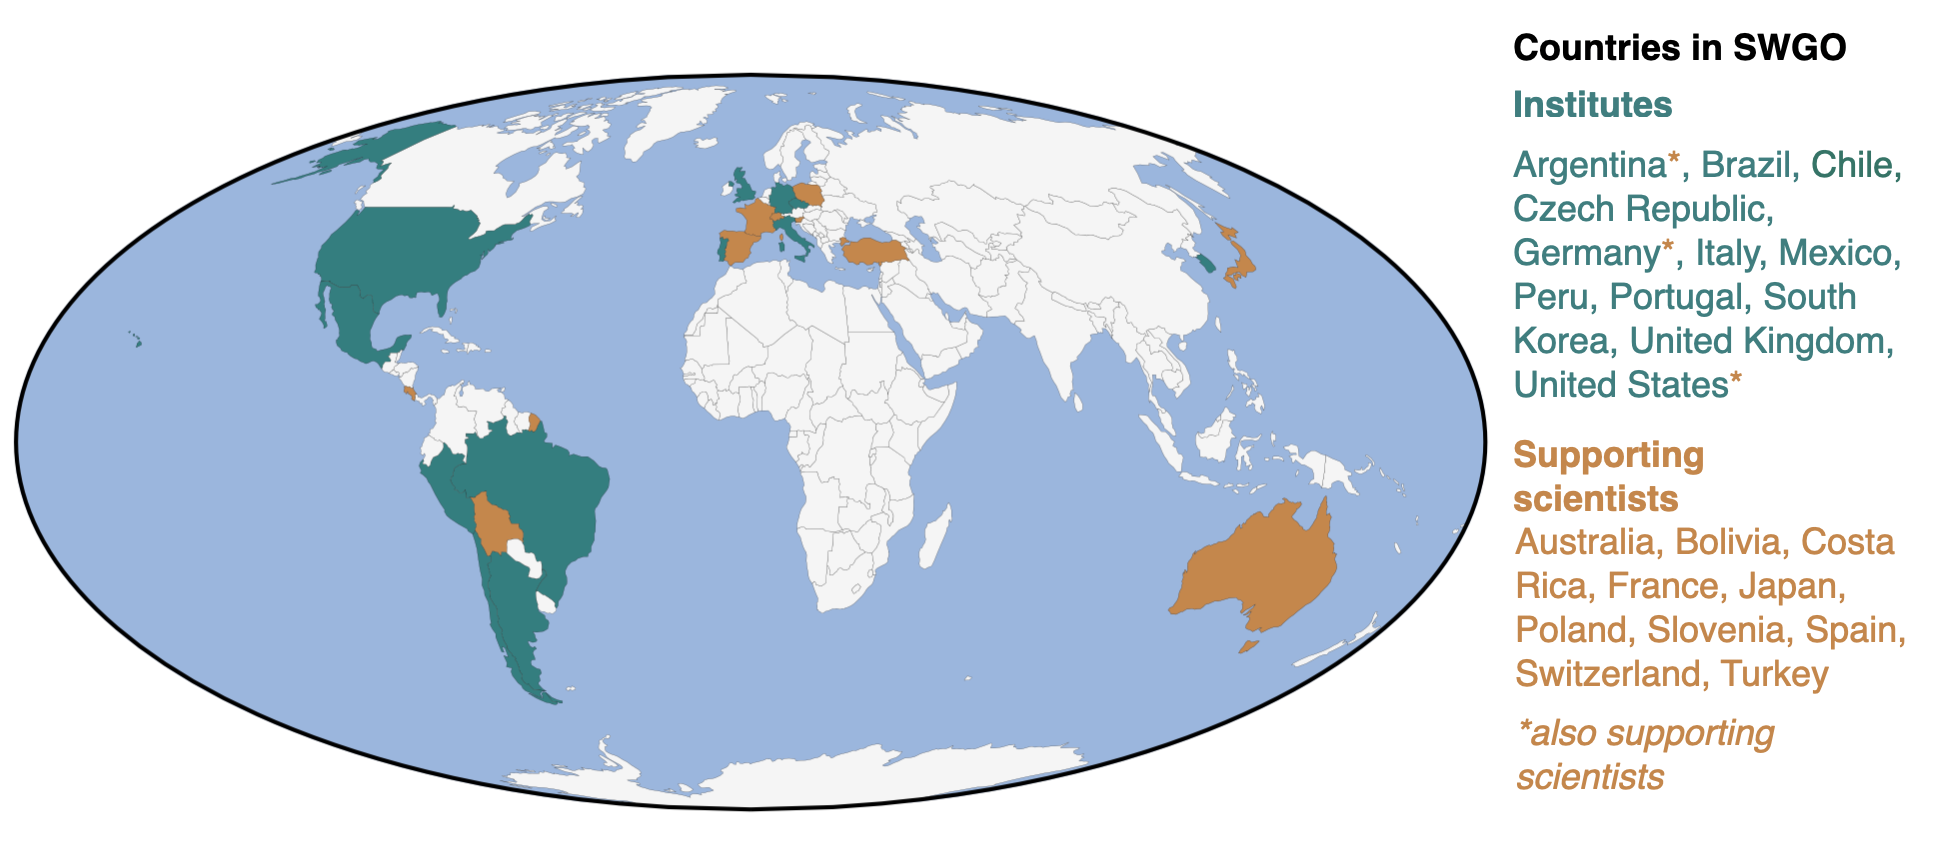 countries involved in SWGO